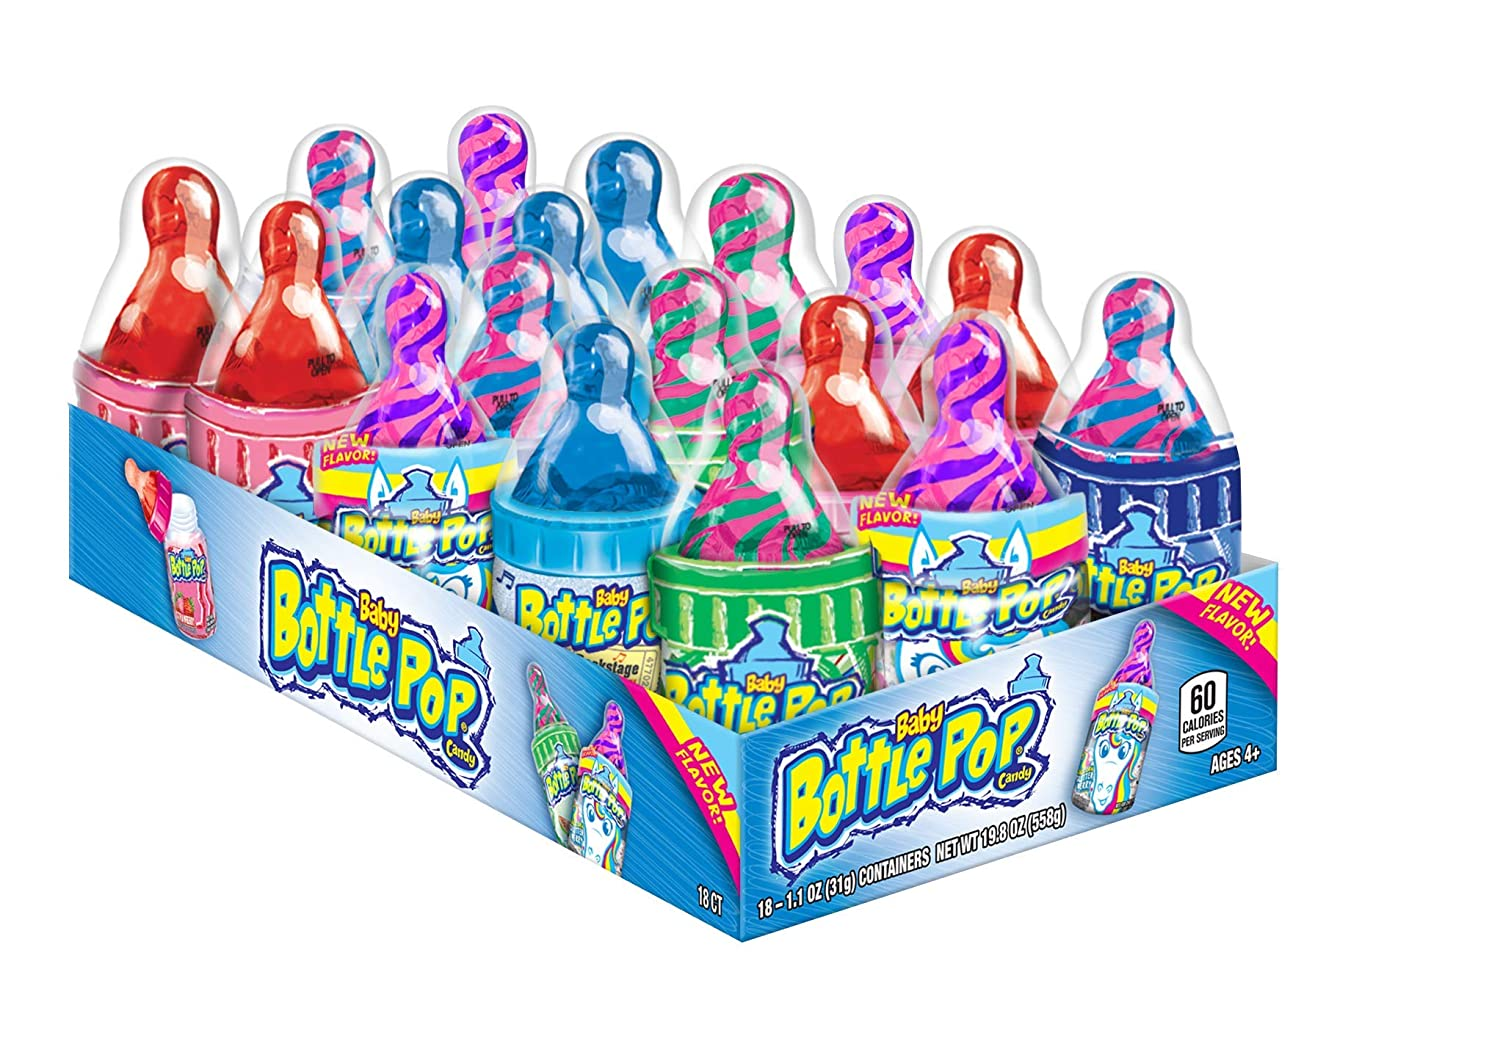 Baby Bottle Pop, Lollipops with Dipping Powder Assorted Flavors 18 pieces, 1.1 oz